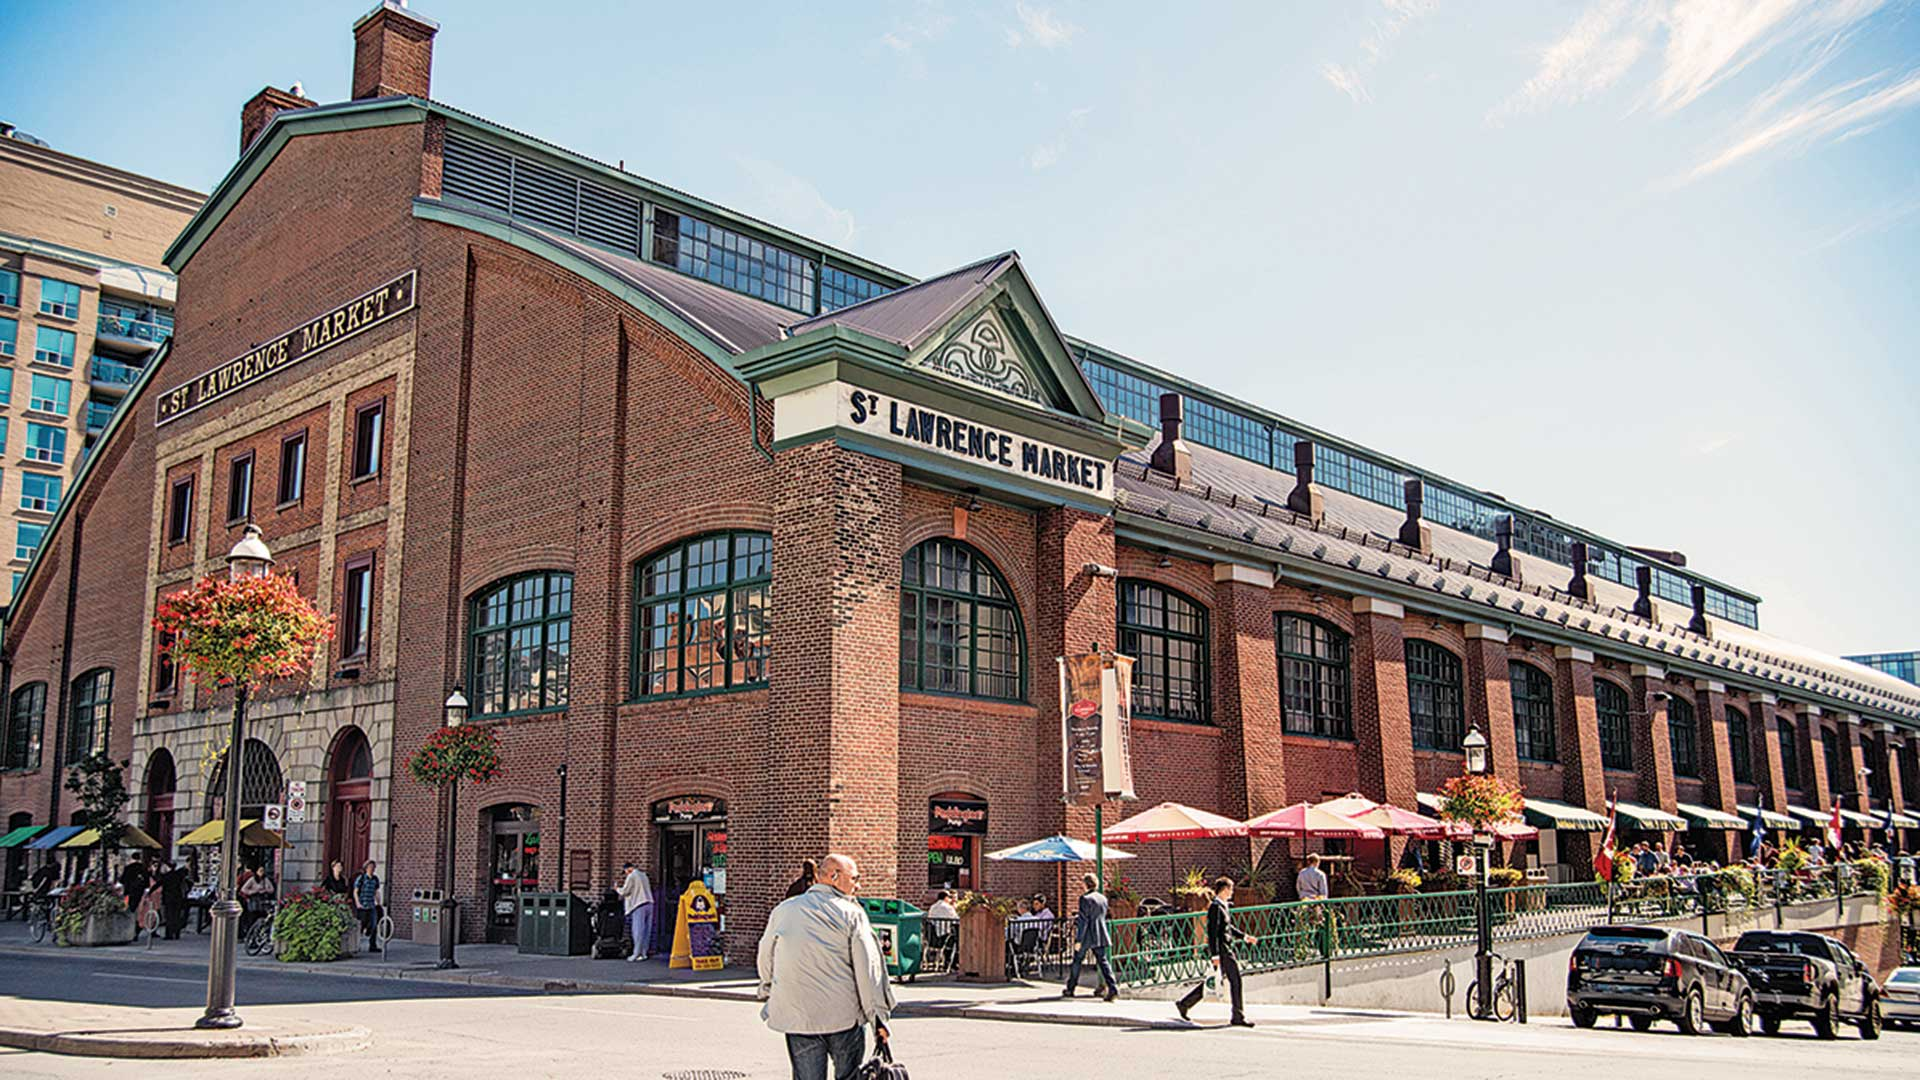 St. Lawrence market, Unique things to do in Toronto